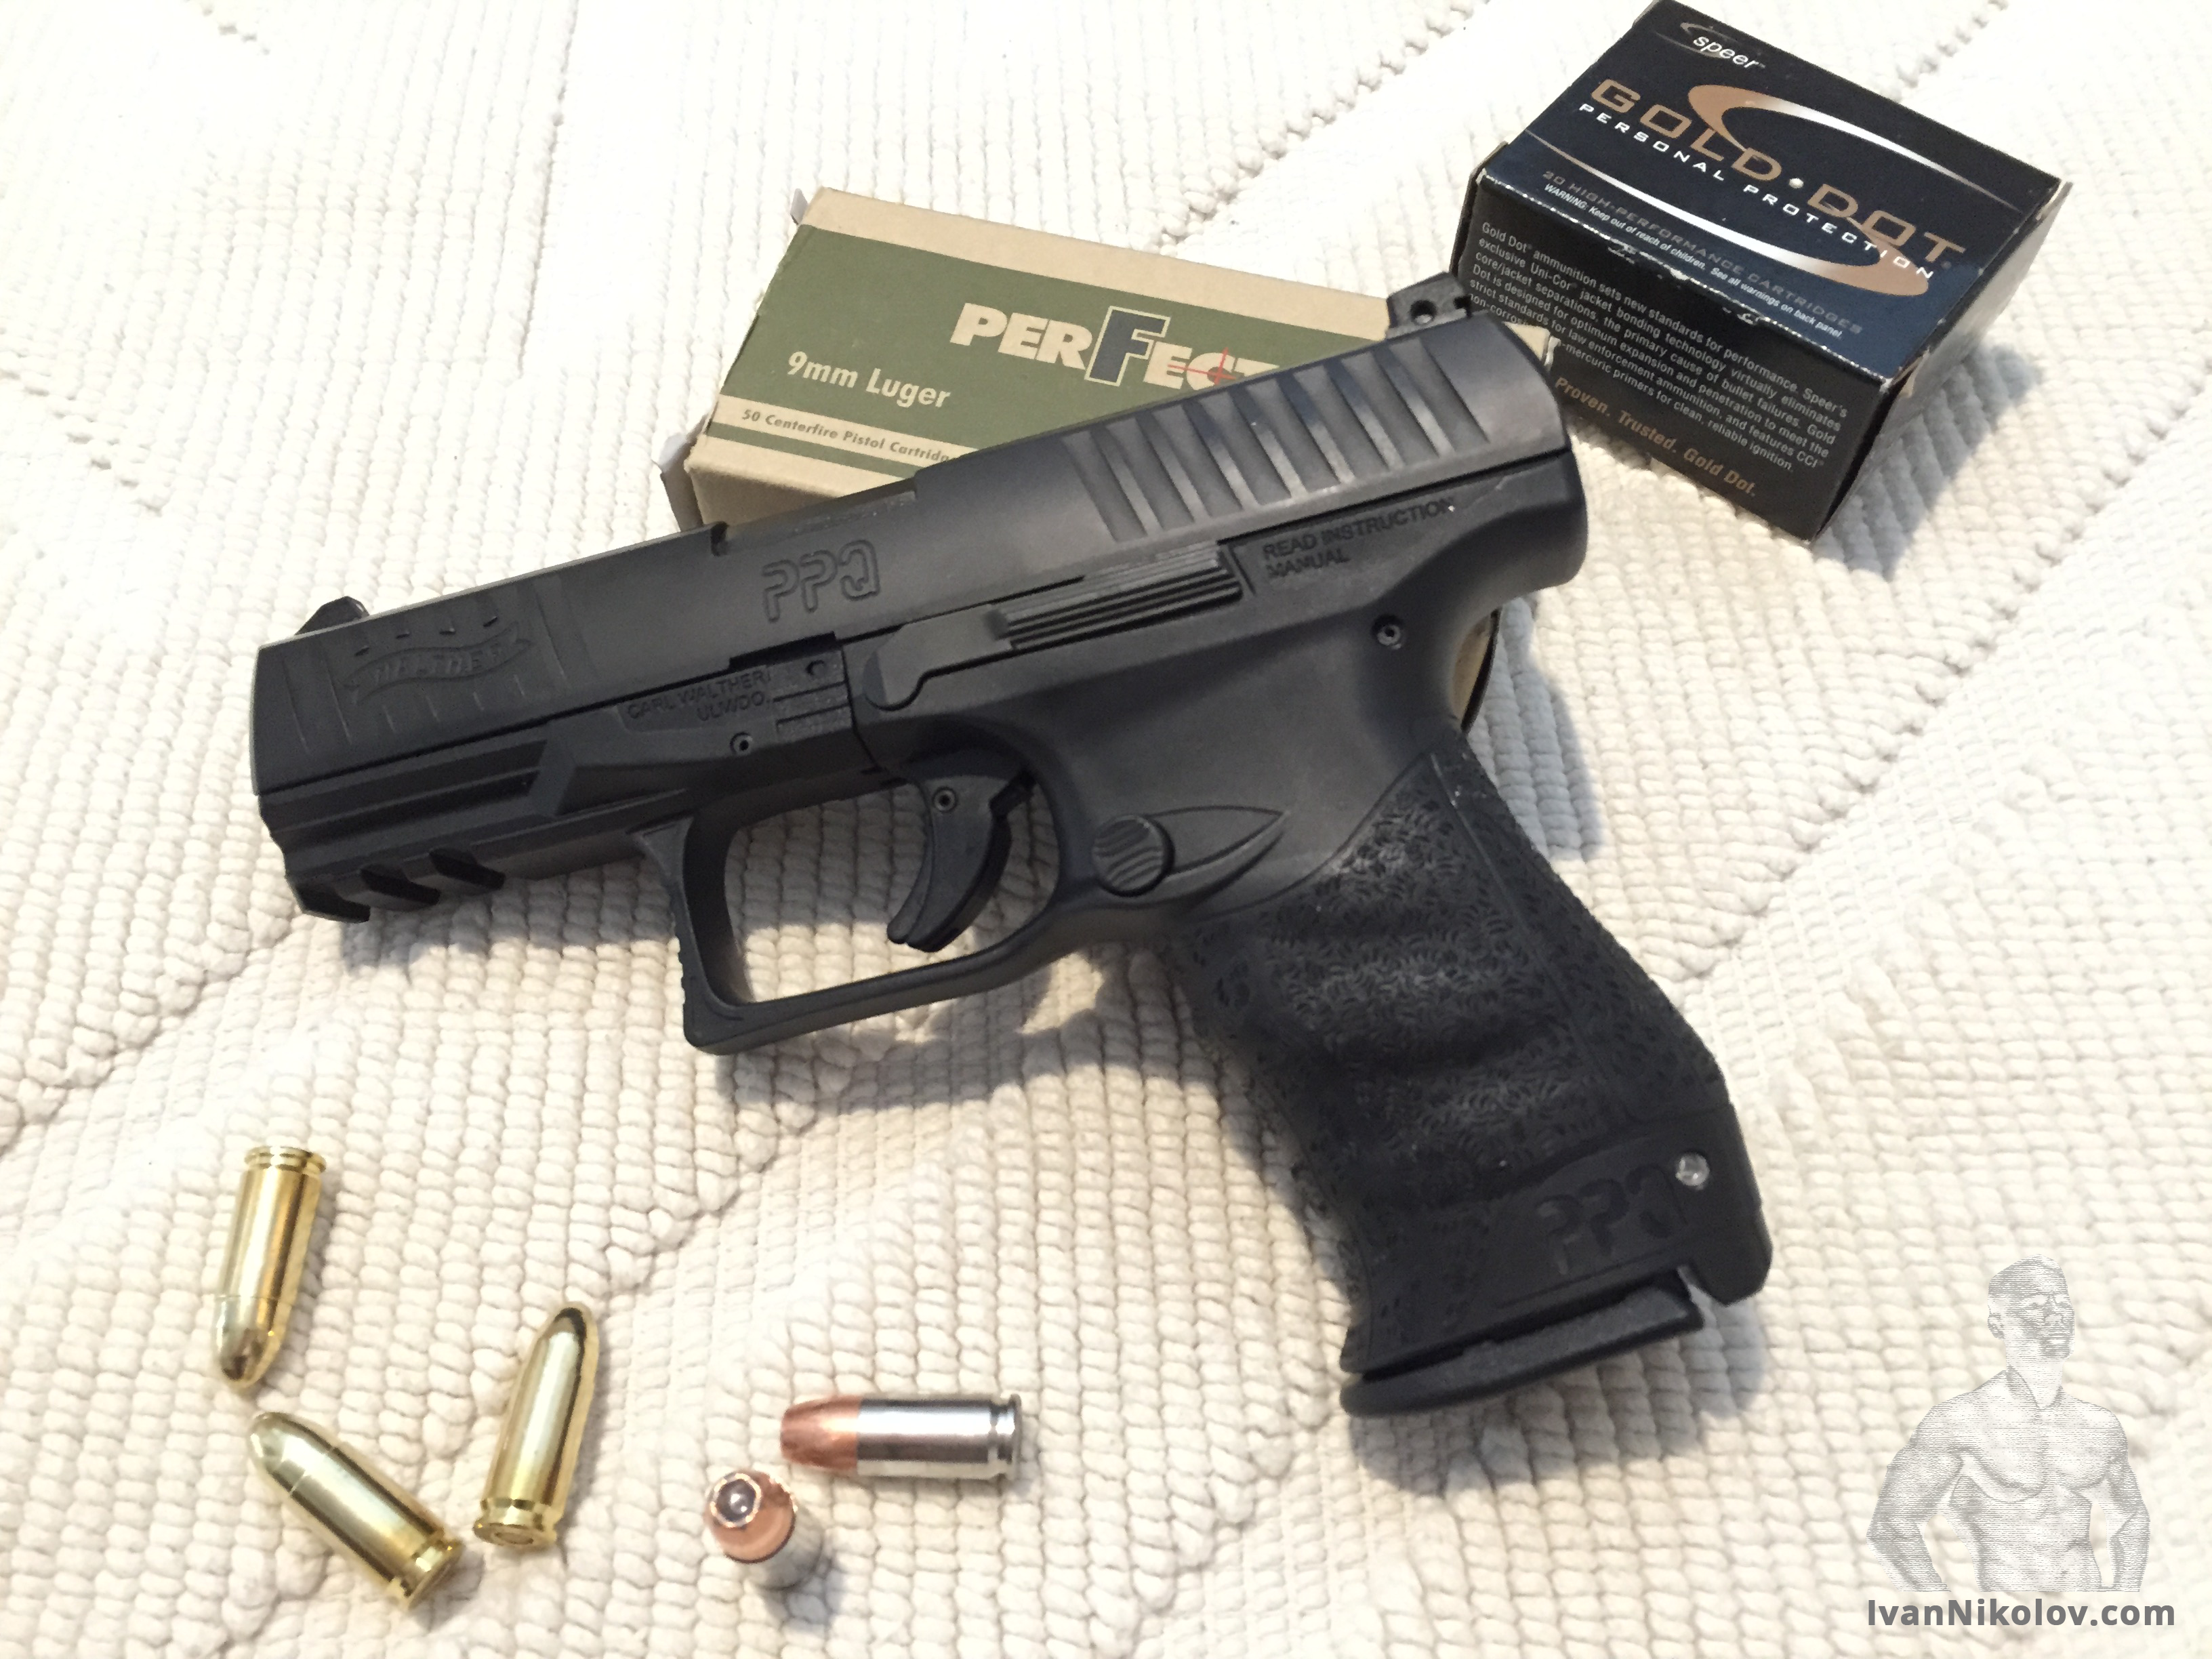 Breaking in my new Walther PPQ M2 - IvanNikolov com